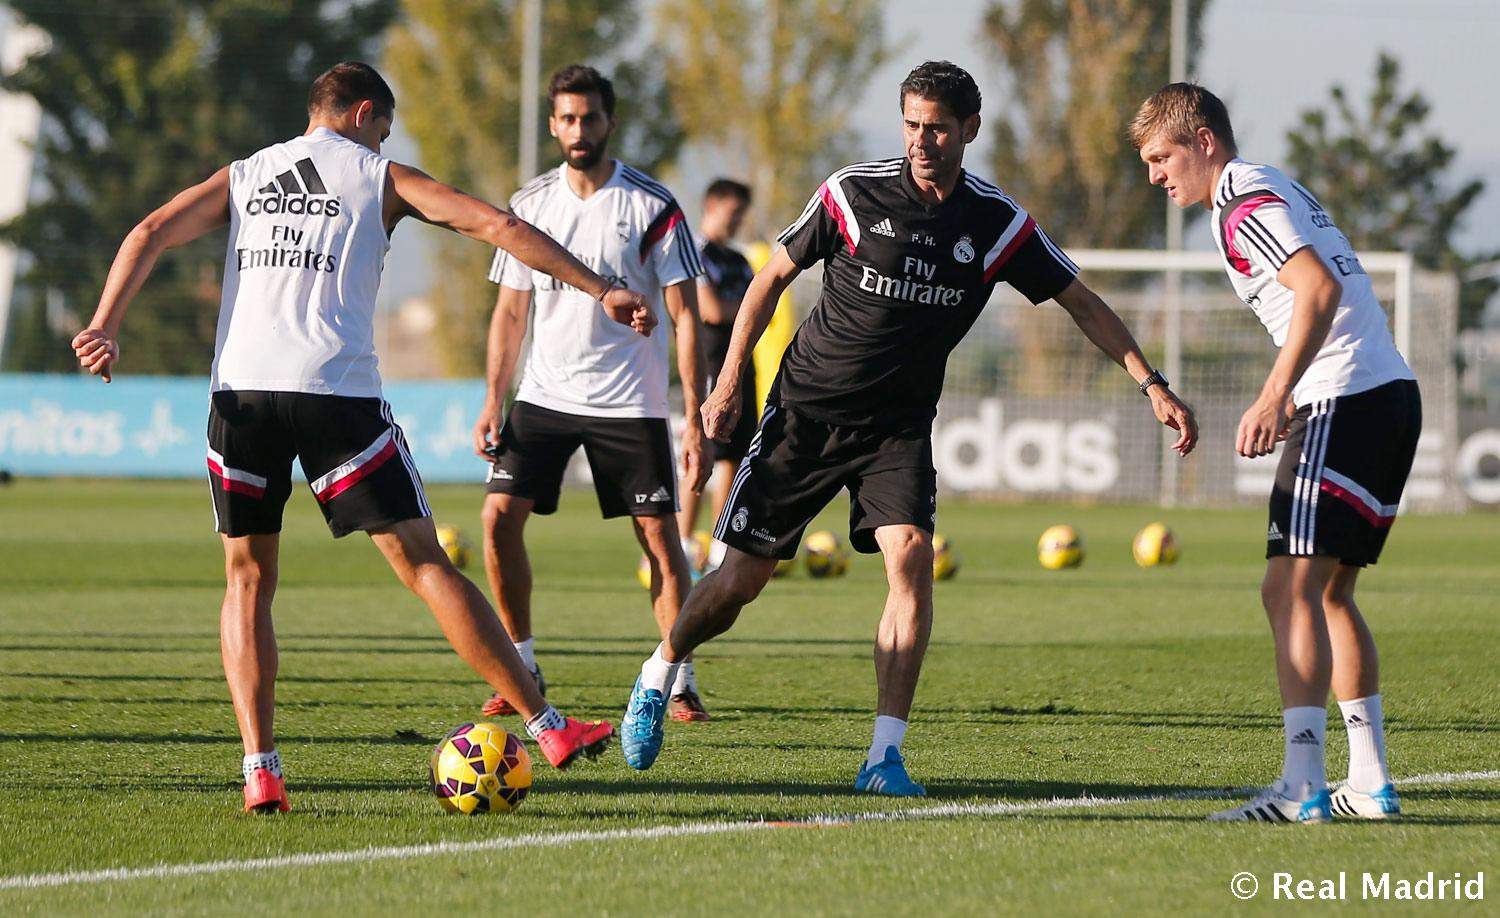 Real Madrid - Entrenamiento del Real Madrid - 31-10-2014